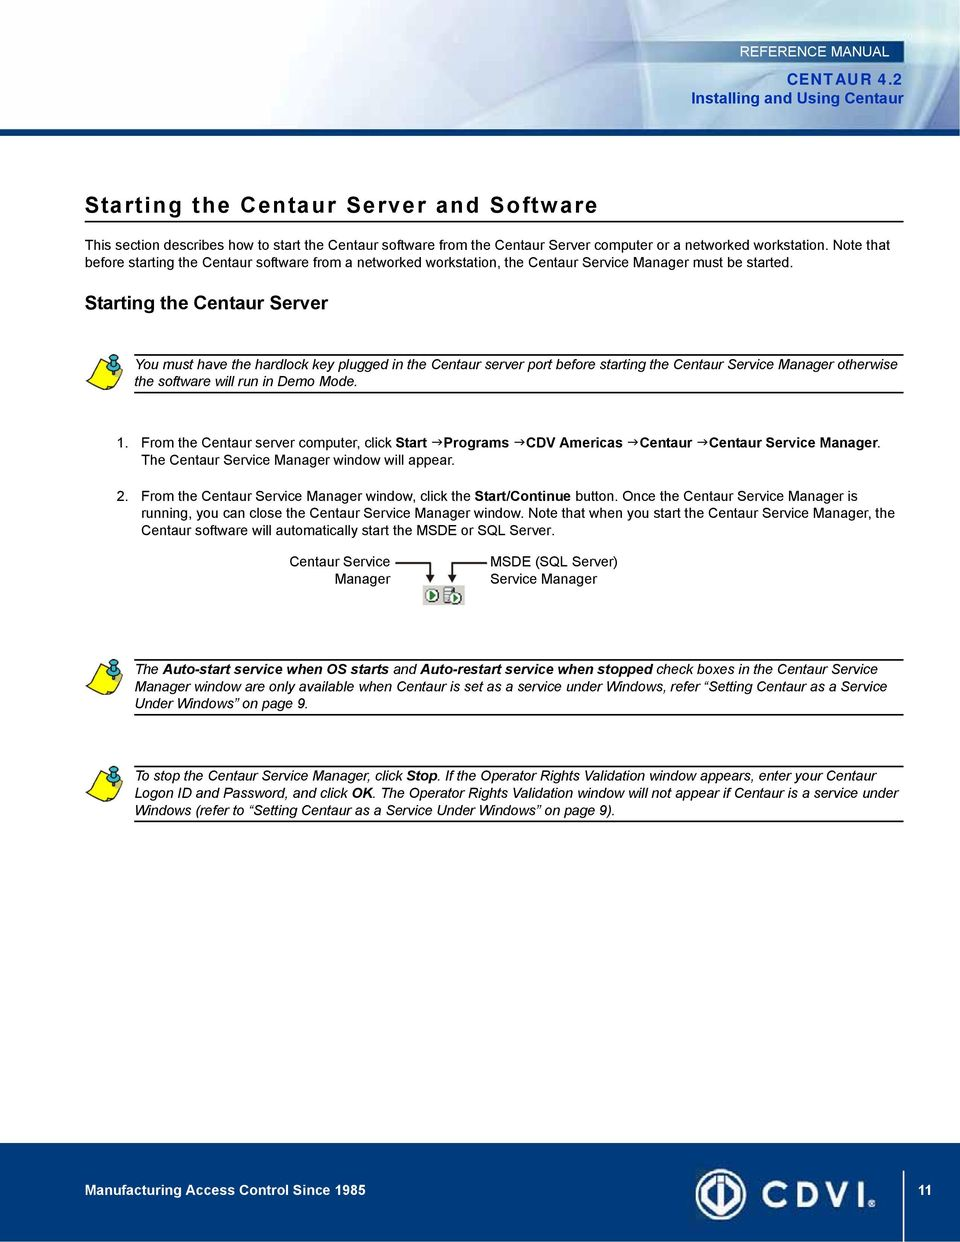 Starting the Centaur Server You must have the hardlock key plugged in the Centaur server port before starting the Centaur Service Manager otherwise the software will run in Demo Mode. 1.